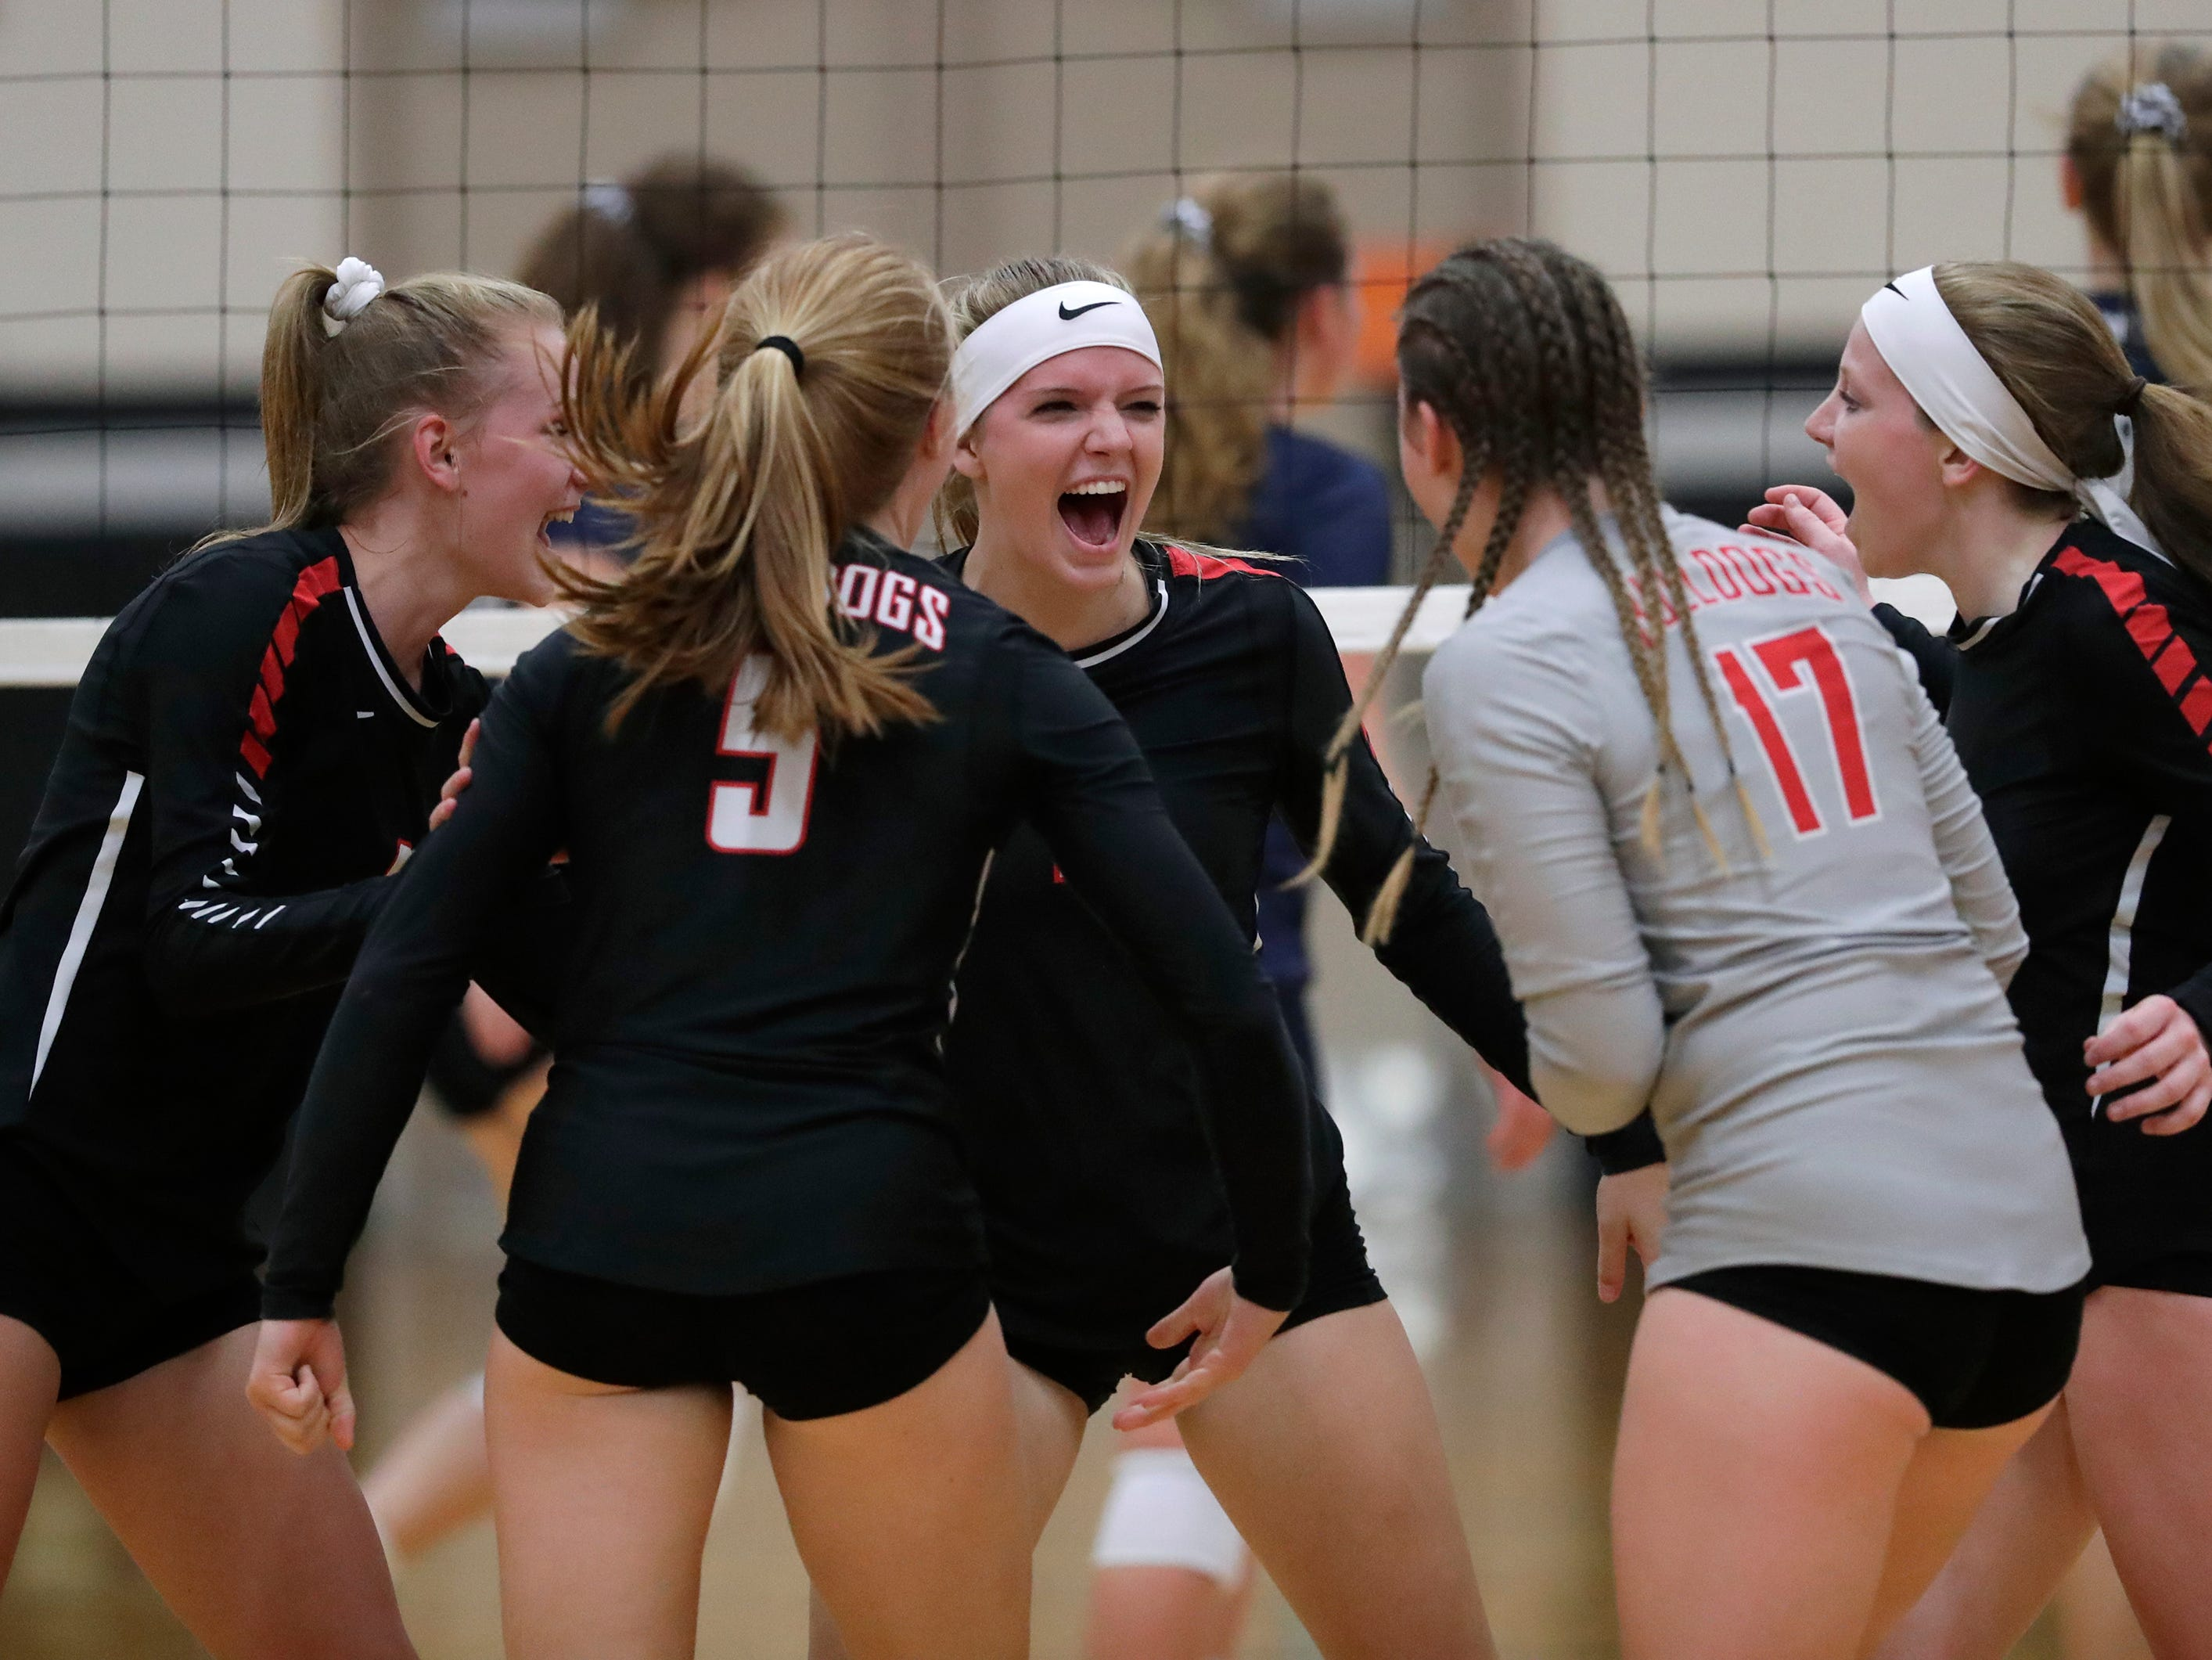 New London High School's players celebrate winning a point against Xavier High School during their girls volleyball match Thursday, Sept. 13, 2018, in Appleton, Wis. 